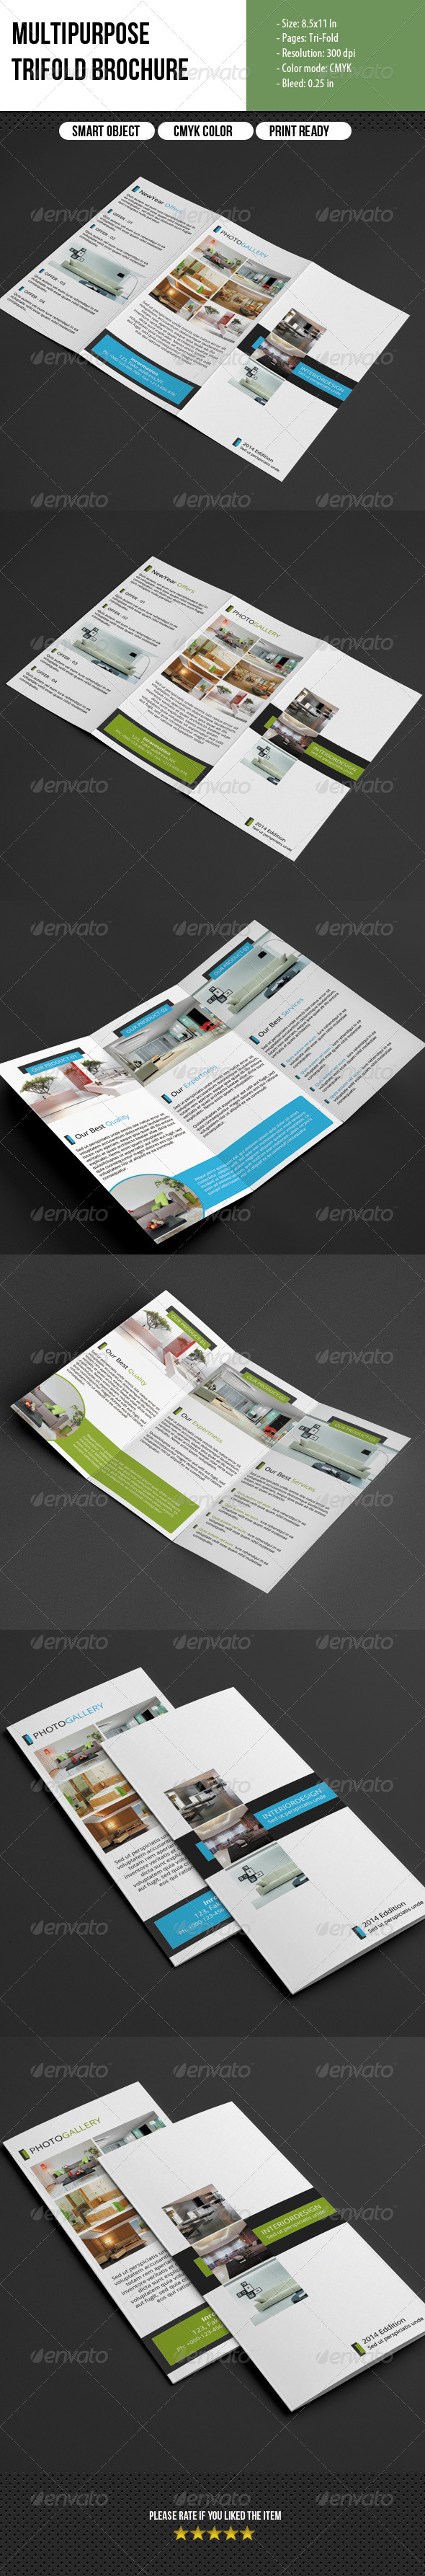 GraphicRiver Multipurpose Trifold Brochure 6805782